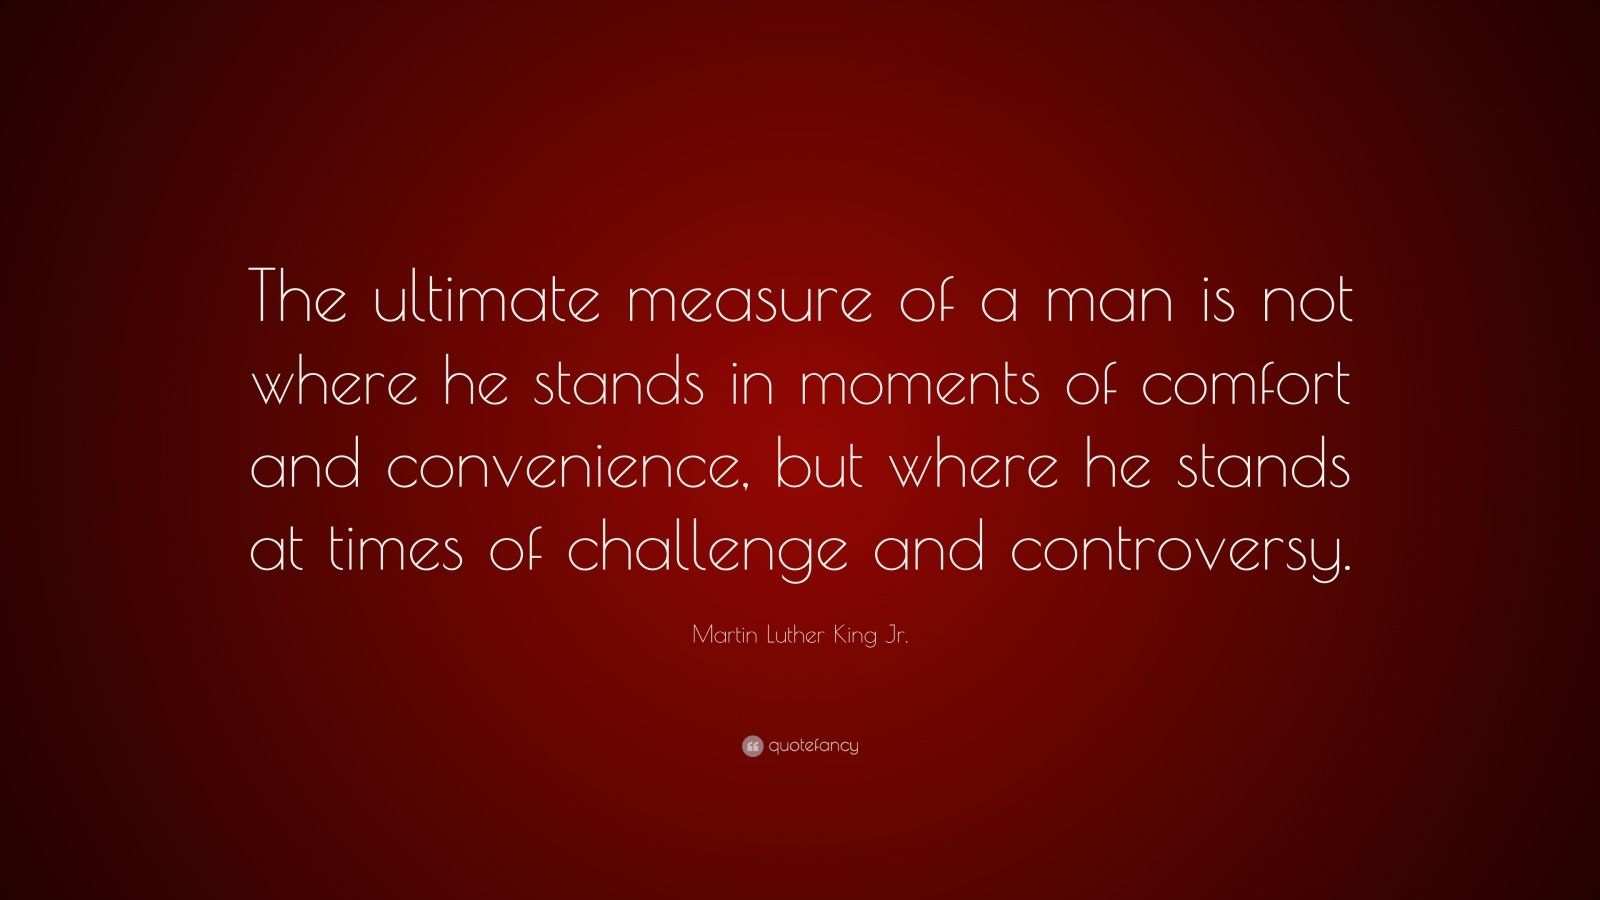 """the ultimate measure of a man is not where he stands in the moments of comfort and convenience but w """"the ultimate measure of a man is not where he stands in moments of comfort and convenience, but where he stands at times of challenge and controversy."""